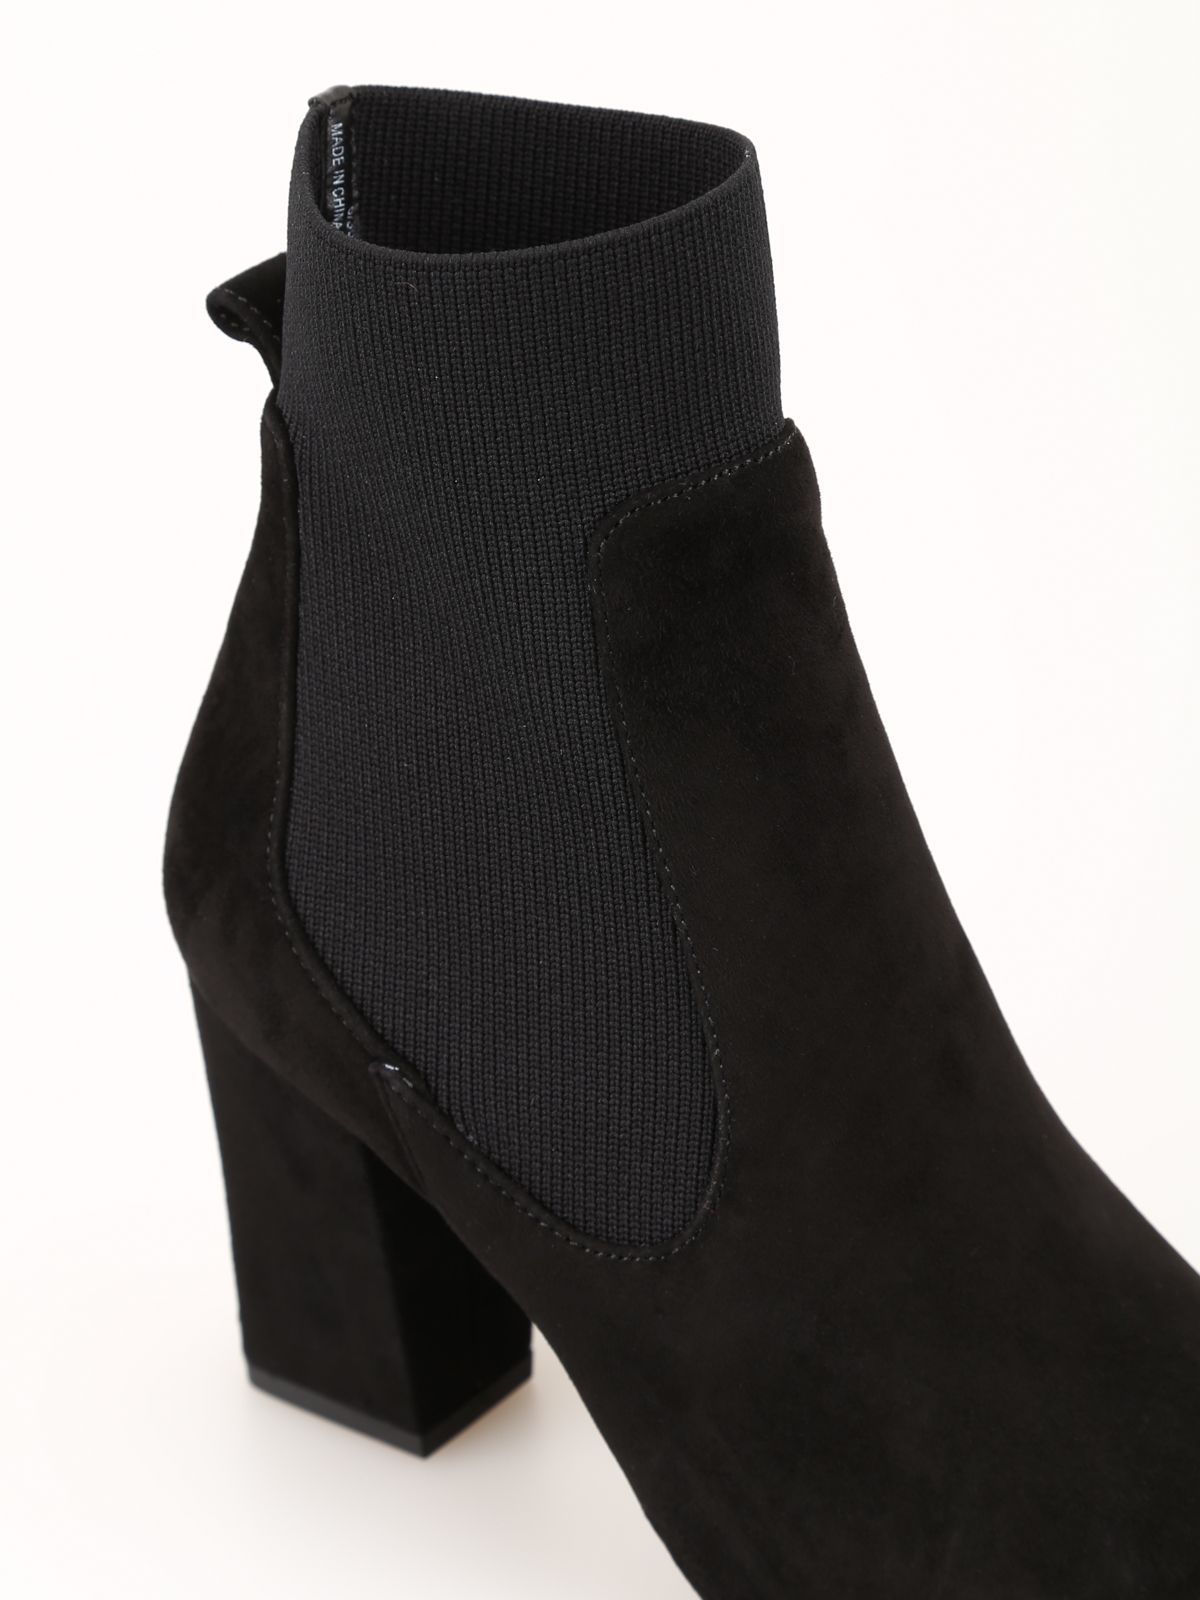 Steve Madden Richter Ankle Boot Black